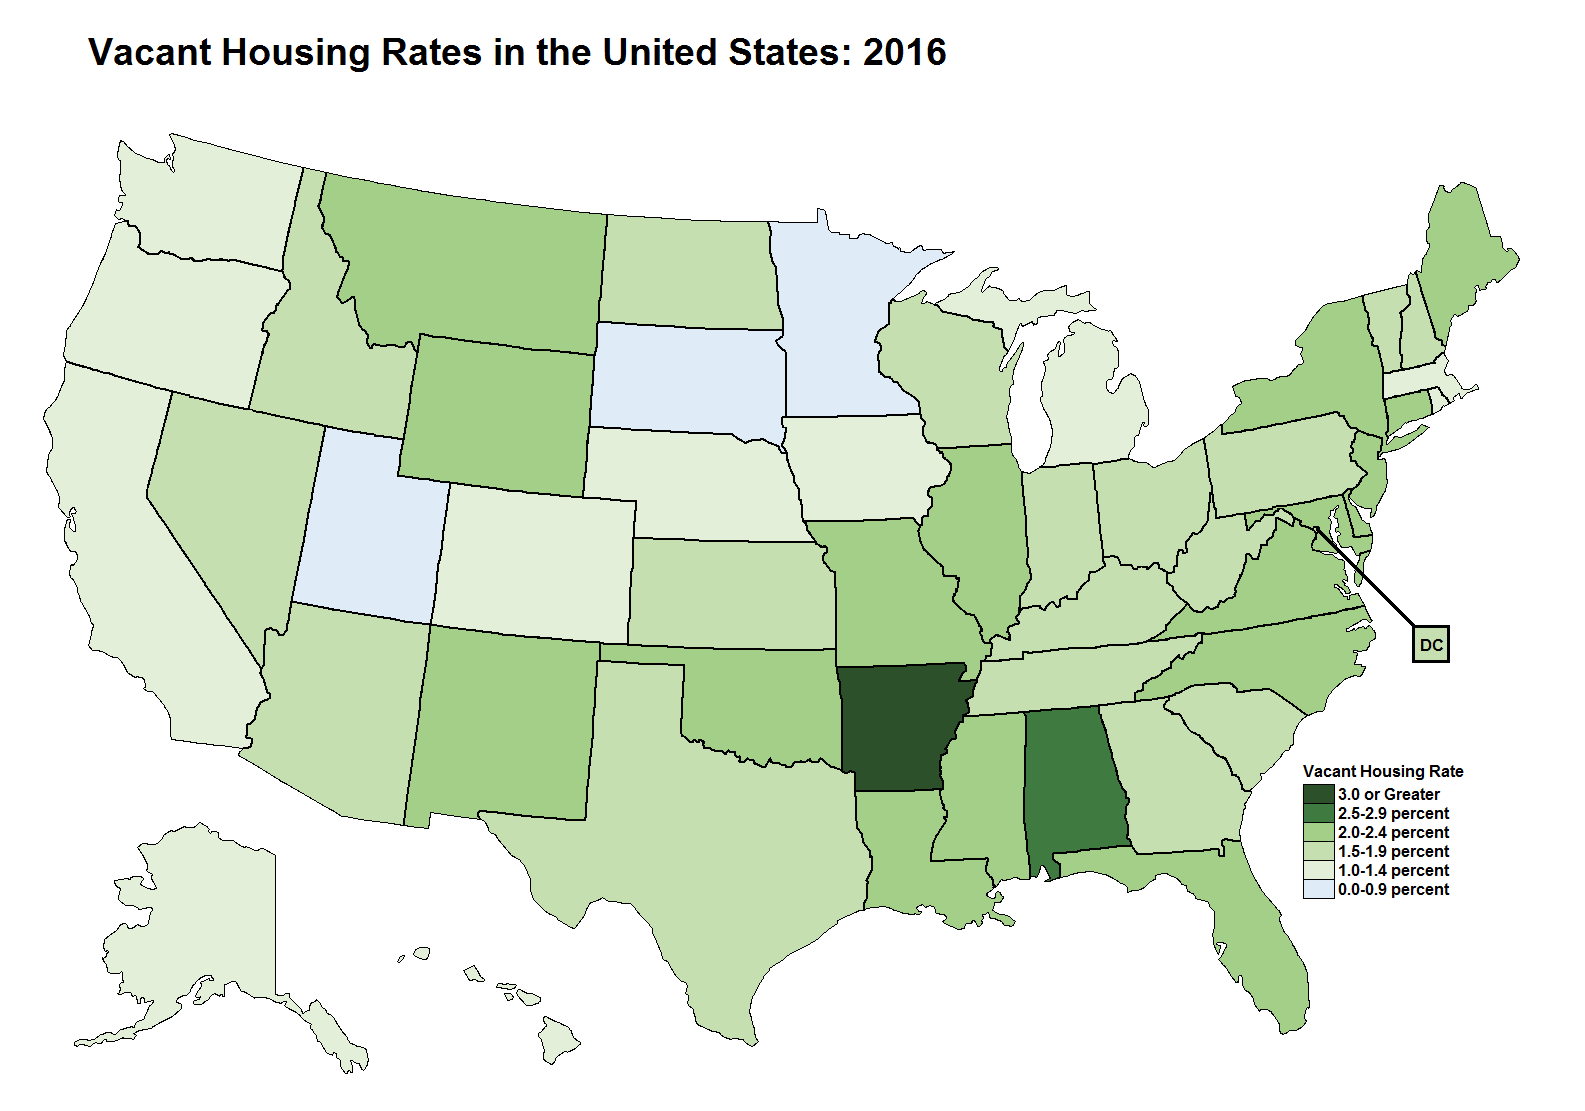 state housing vacancy rate 2016.png